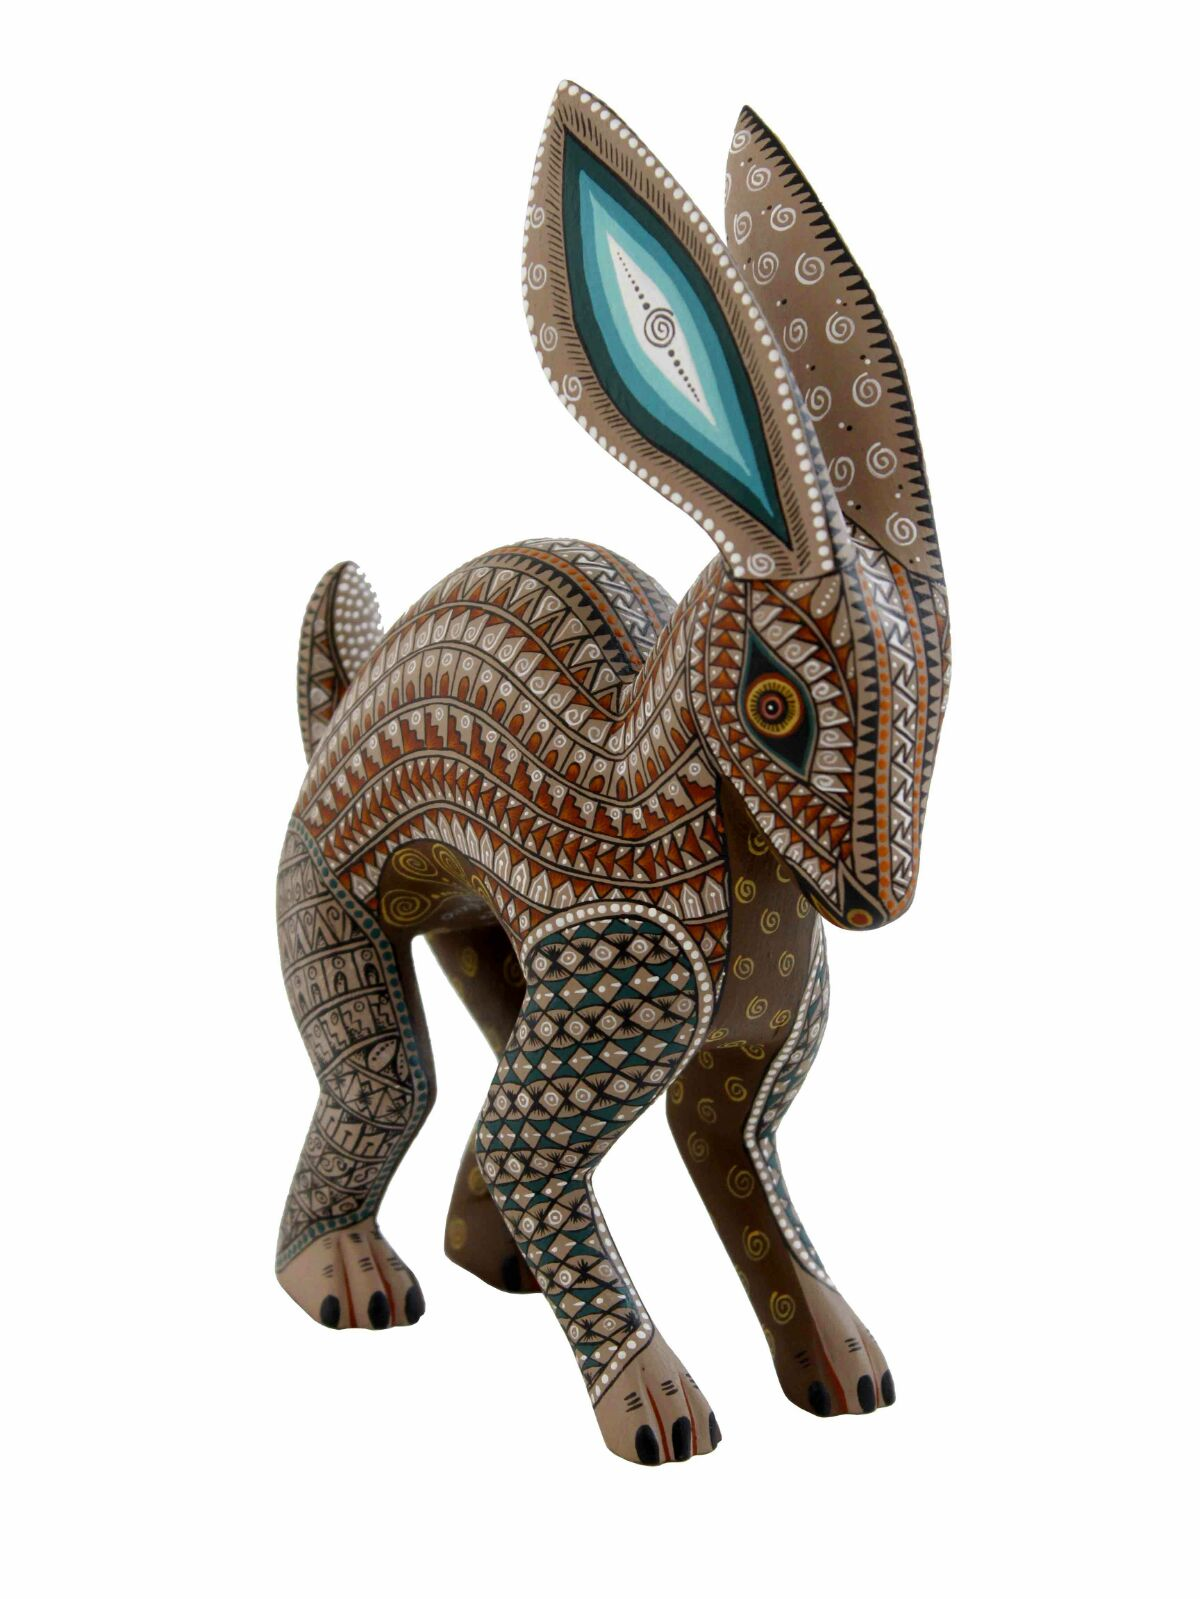 ALEBRIJES - Are a brightly colored Mexican folk art sculptures of fantastical (fantasy/mythical) creatures.